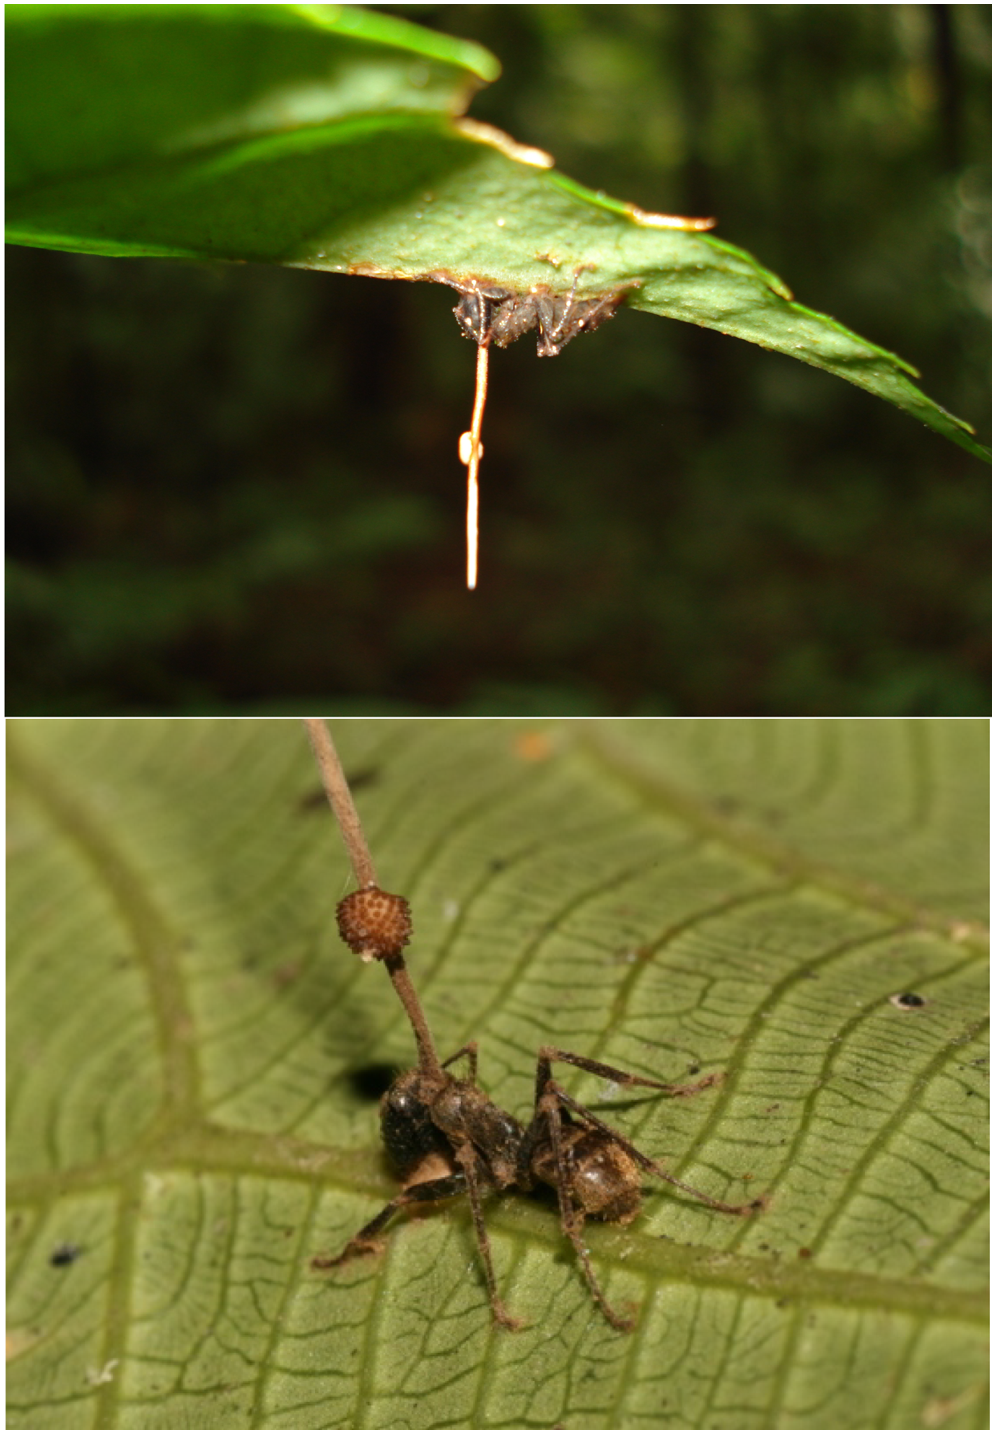 Camponotus leonardi infected with Ophiocordyceps unilateralis | David P. Hughes & Maj-Britt Pontoppidan/Wikimedia Commons [CC BY 2.5]